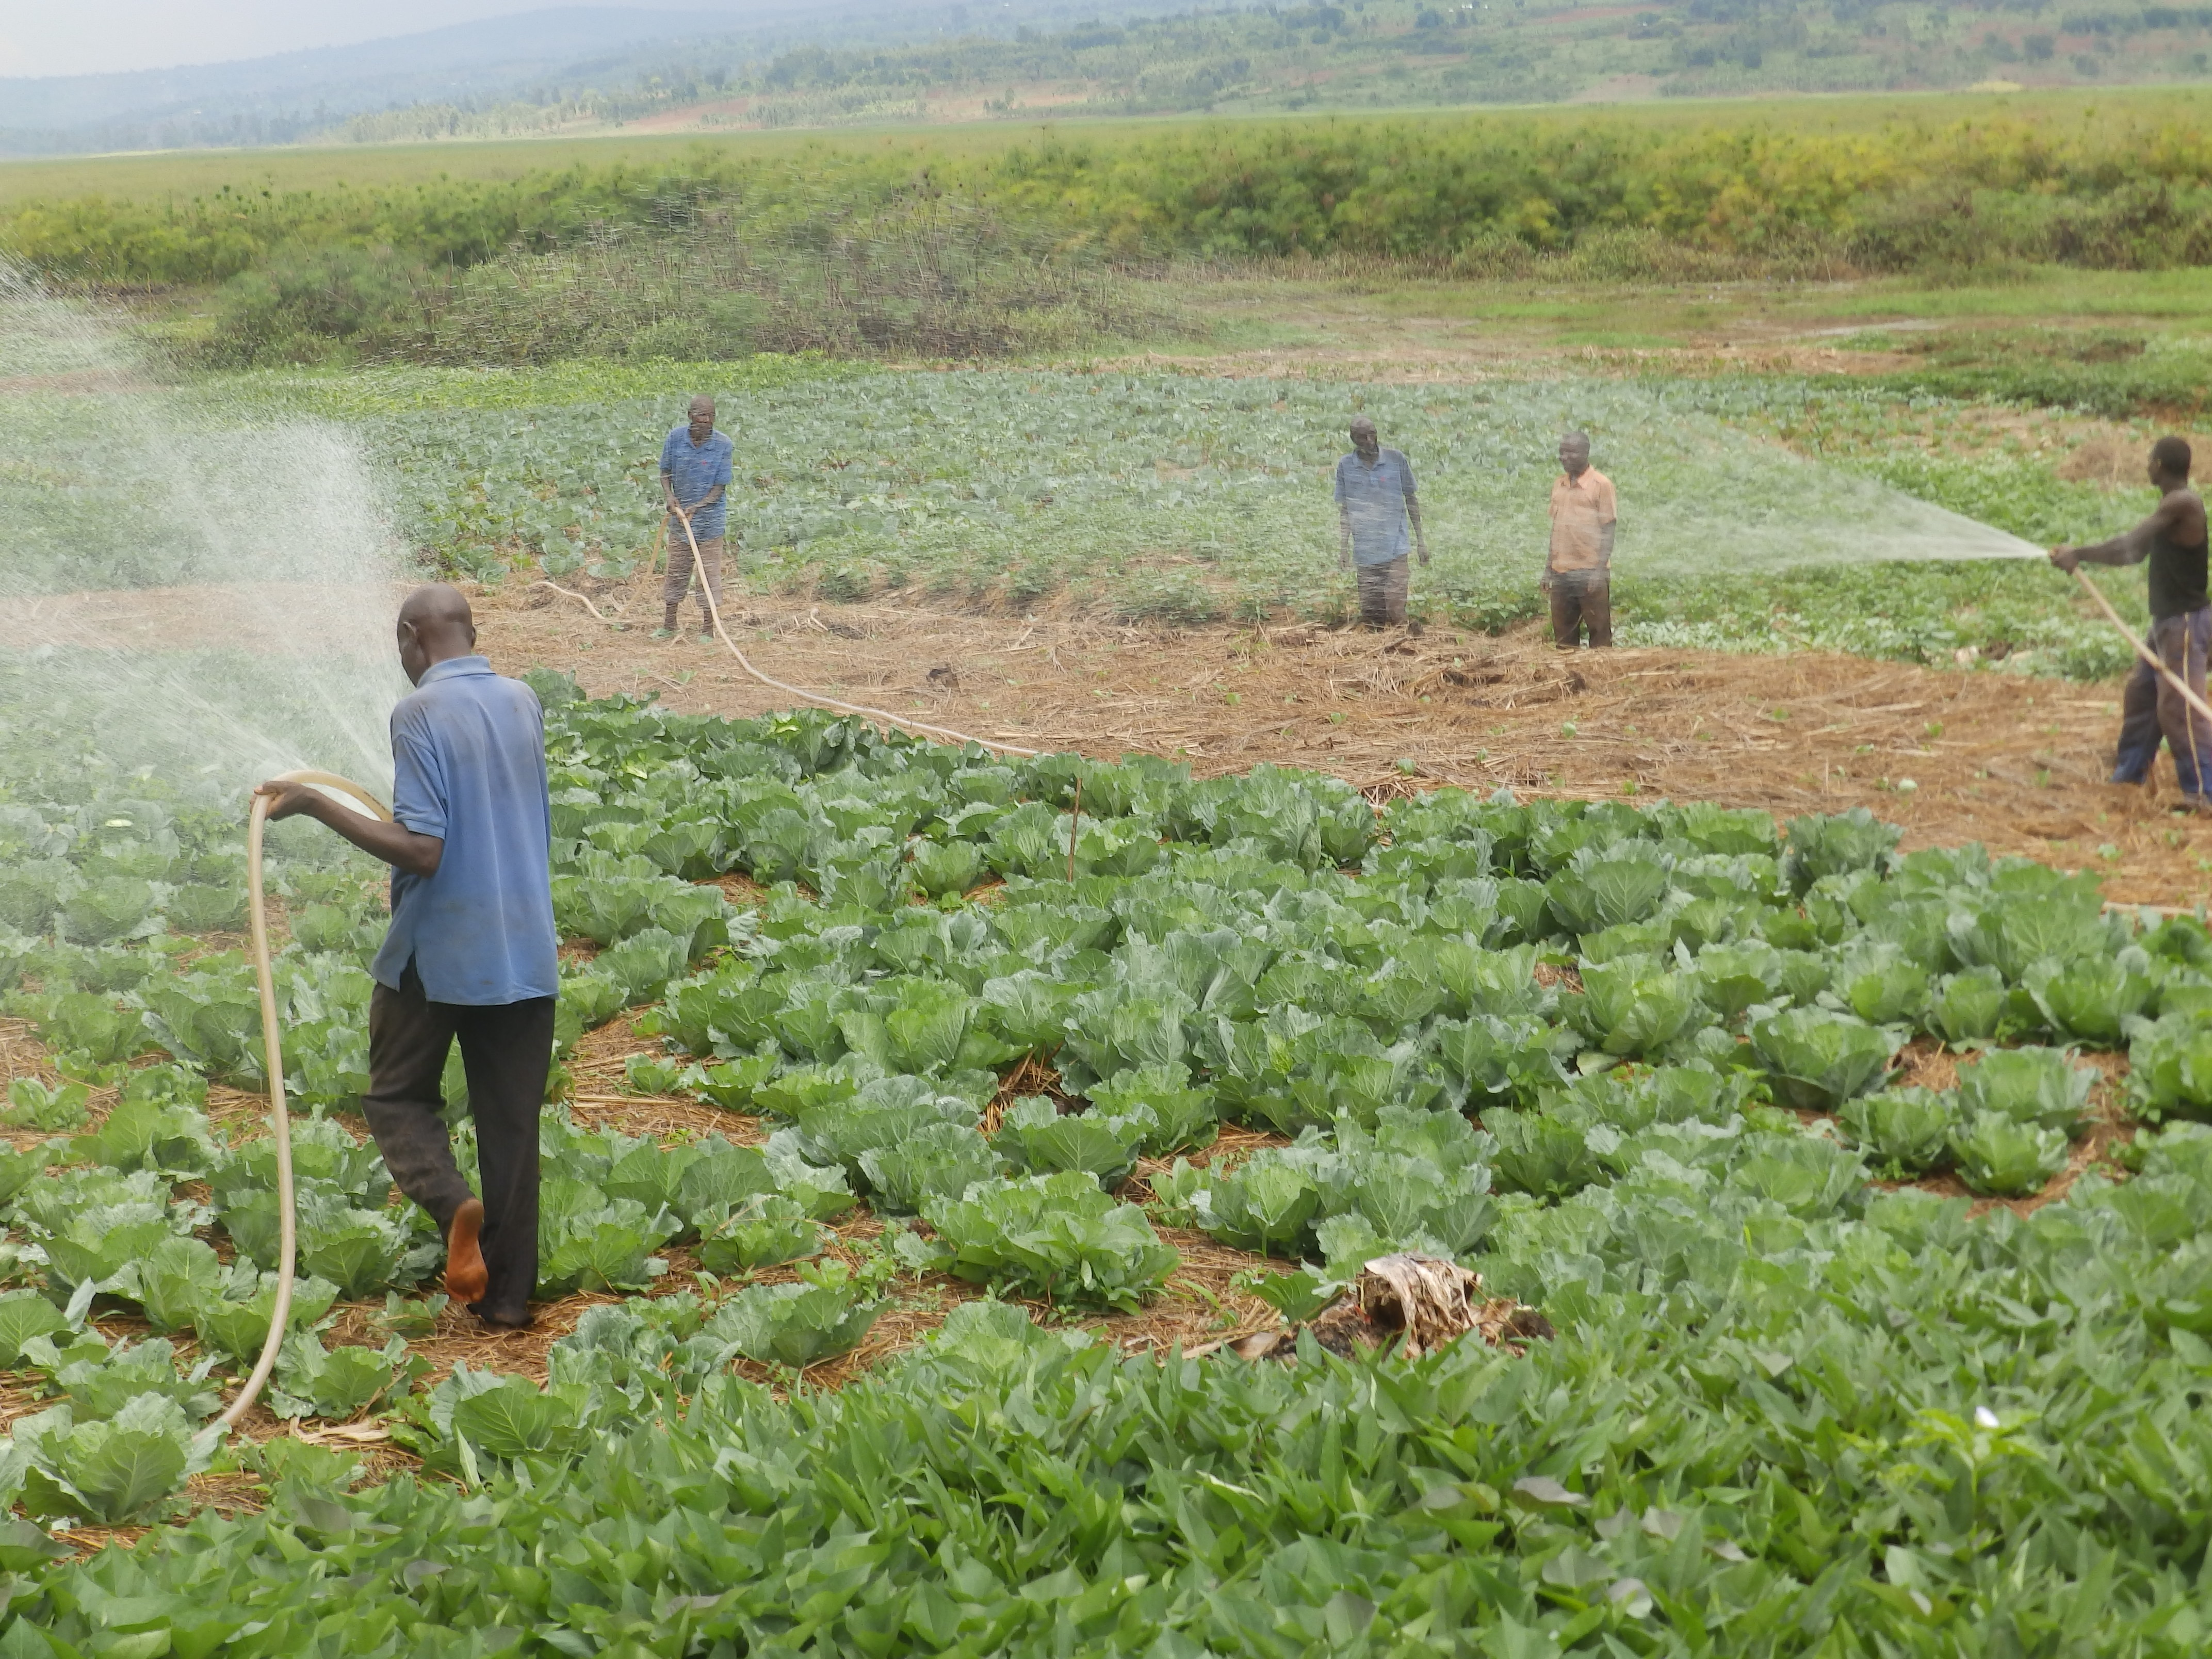 smallholder farmers play a critical role to build resilient food systems